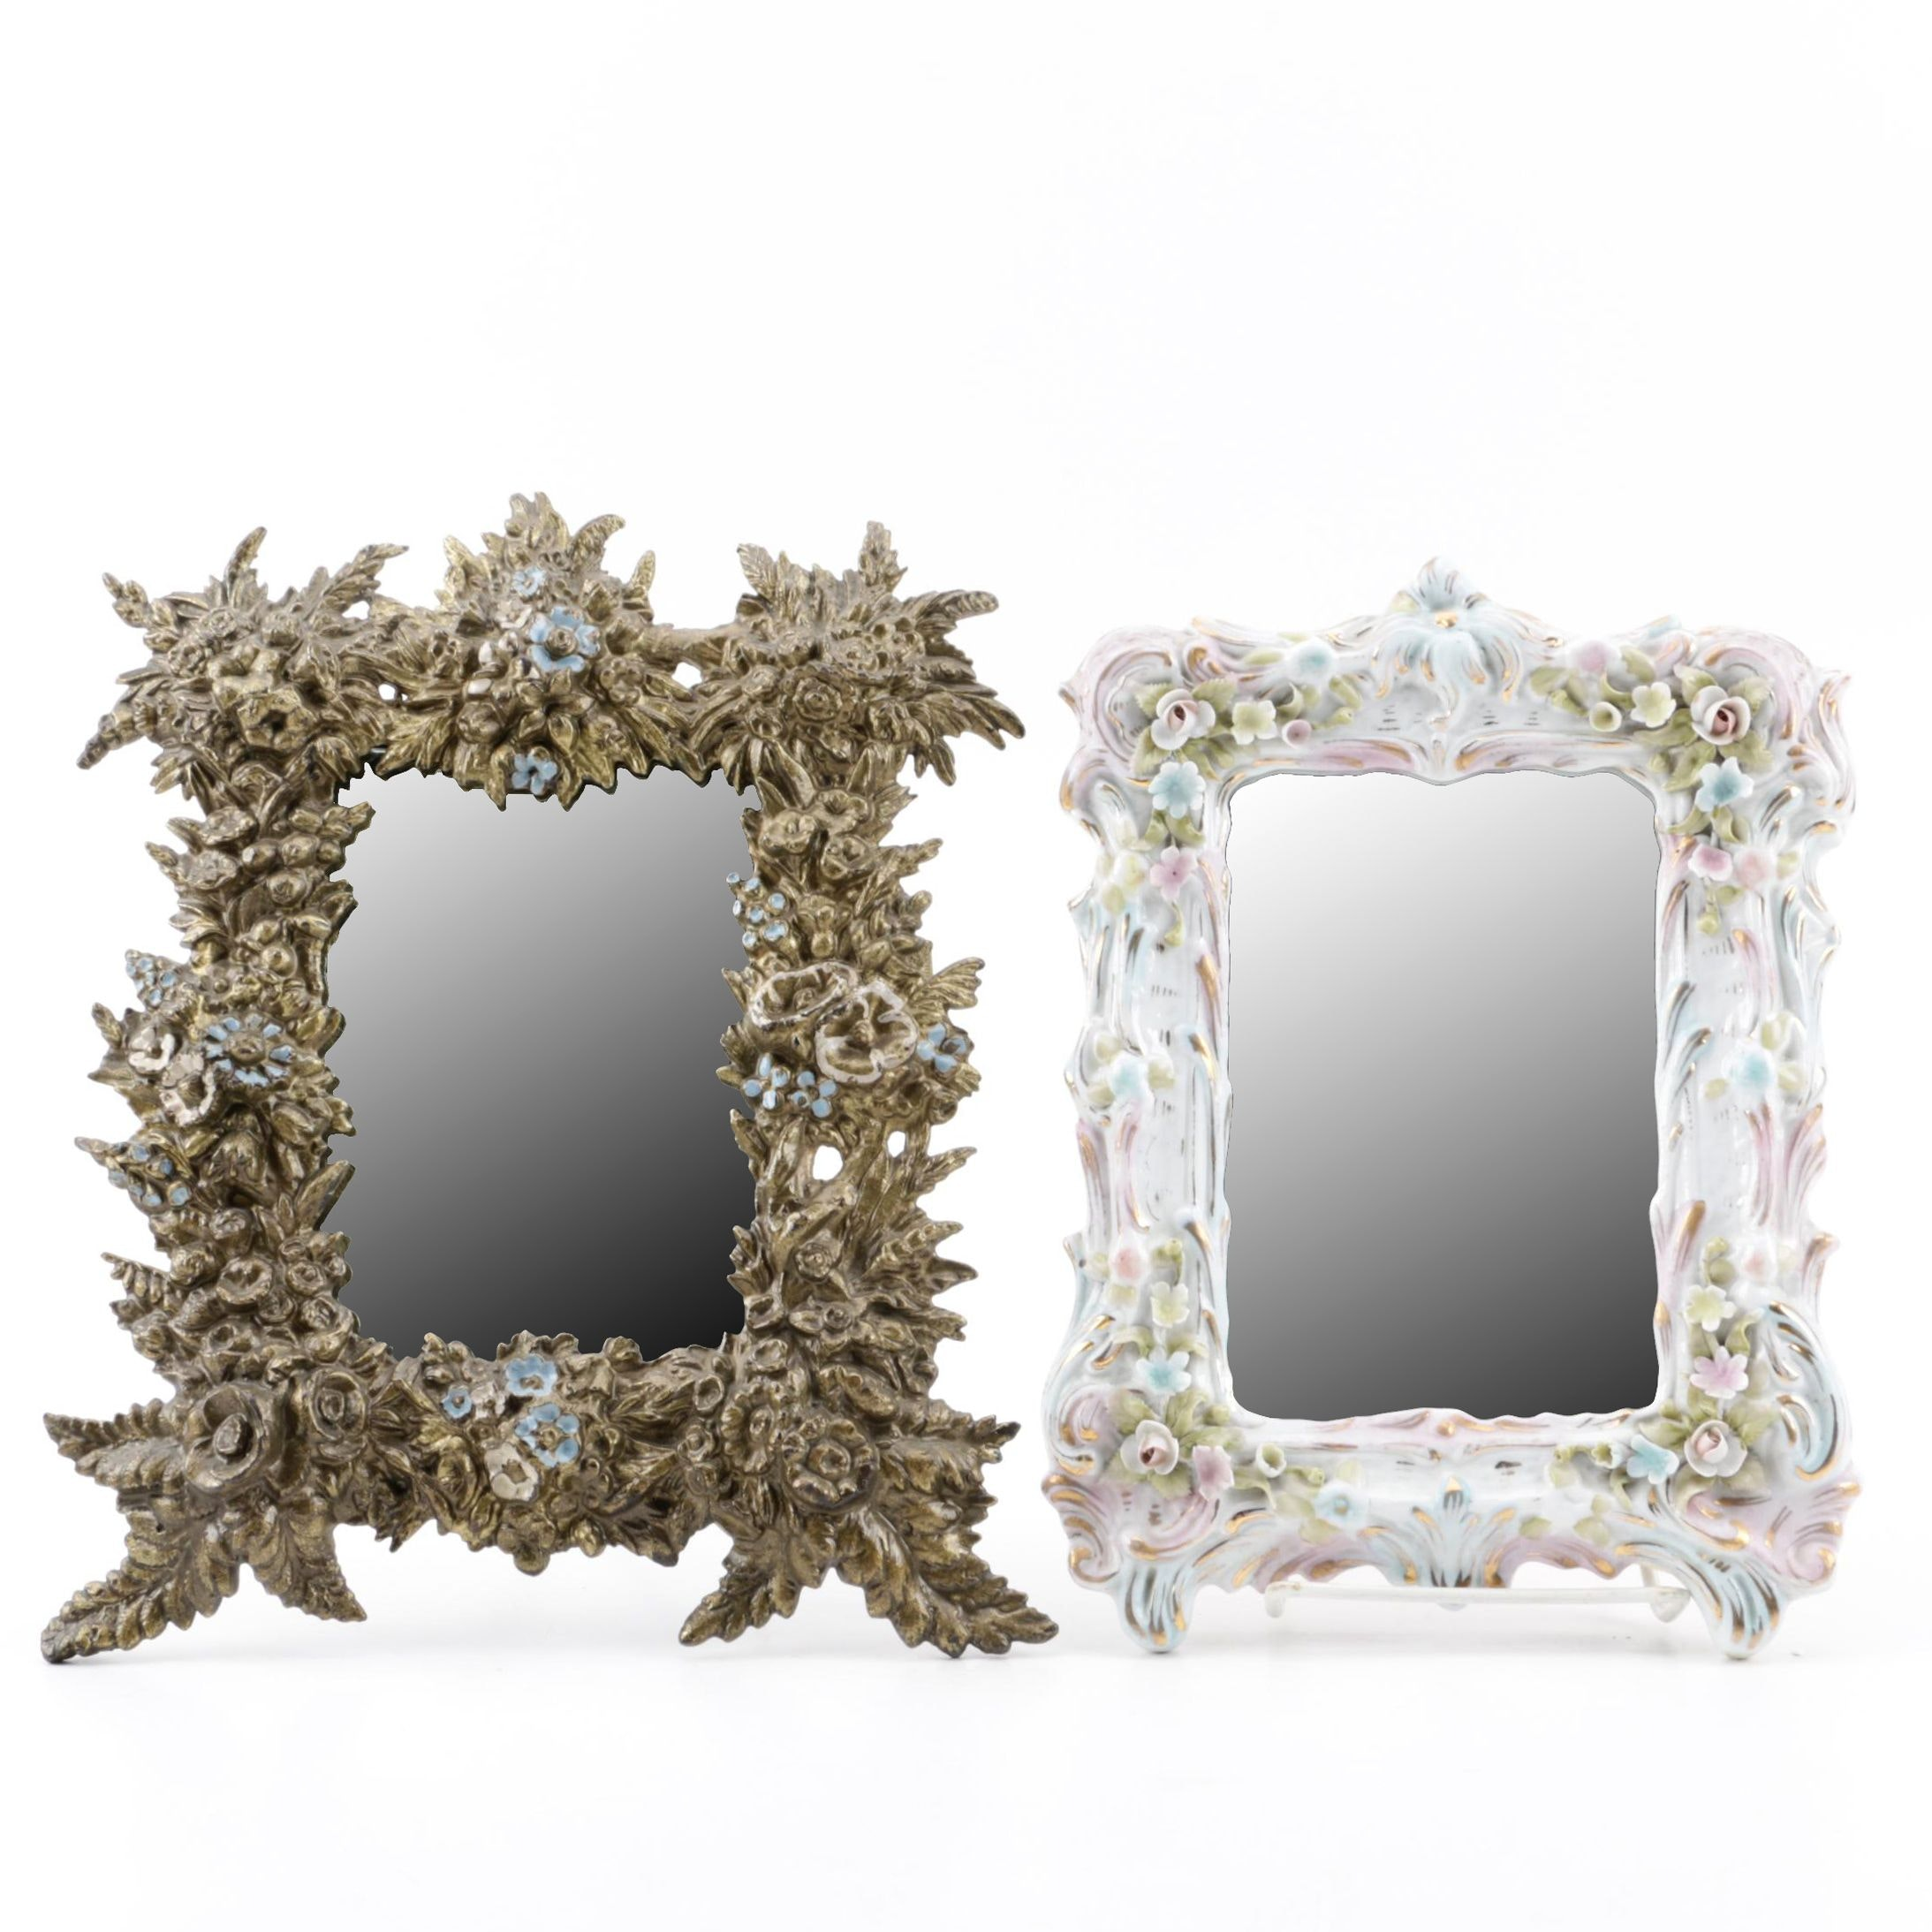 Antique Brass Table Mirror and Vintage Porcelain Wall Mirror